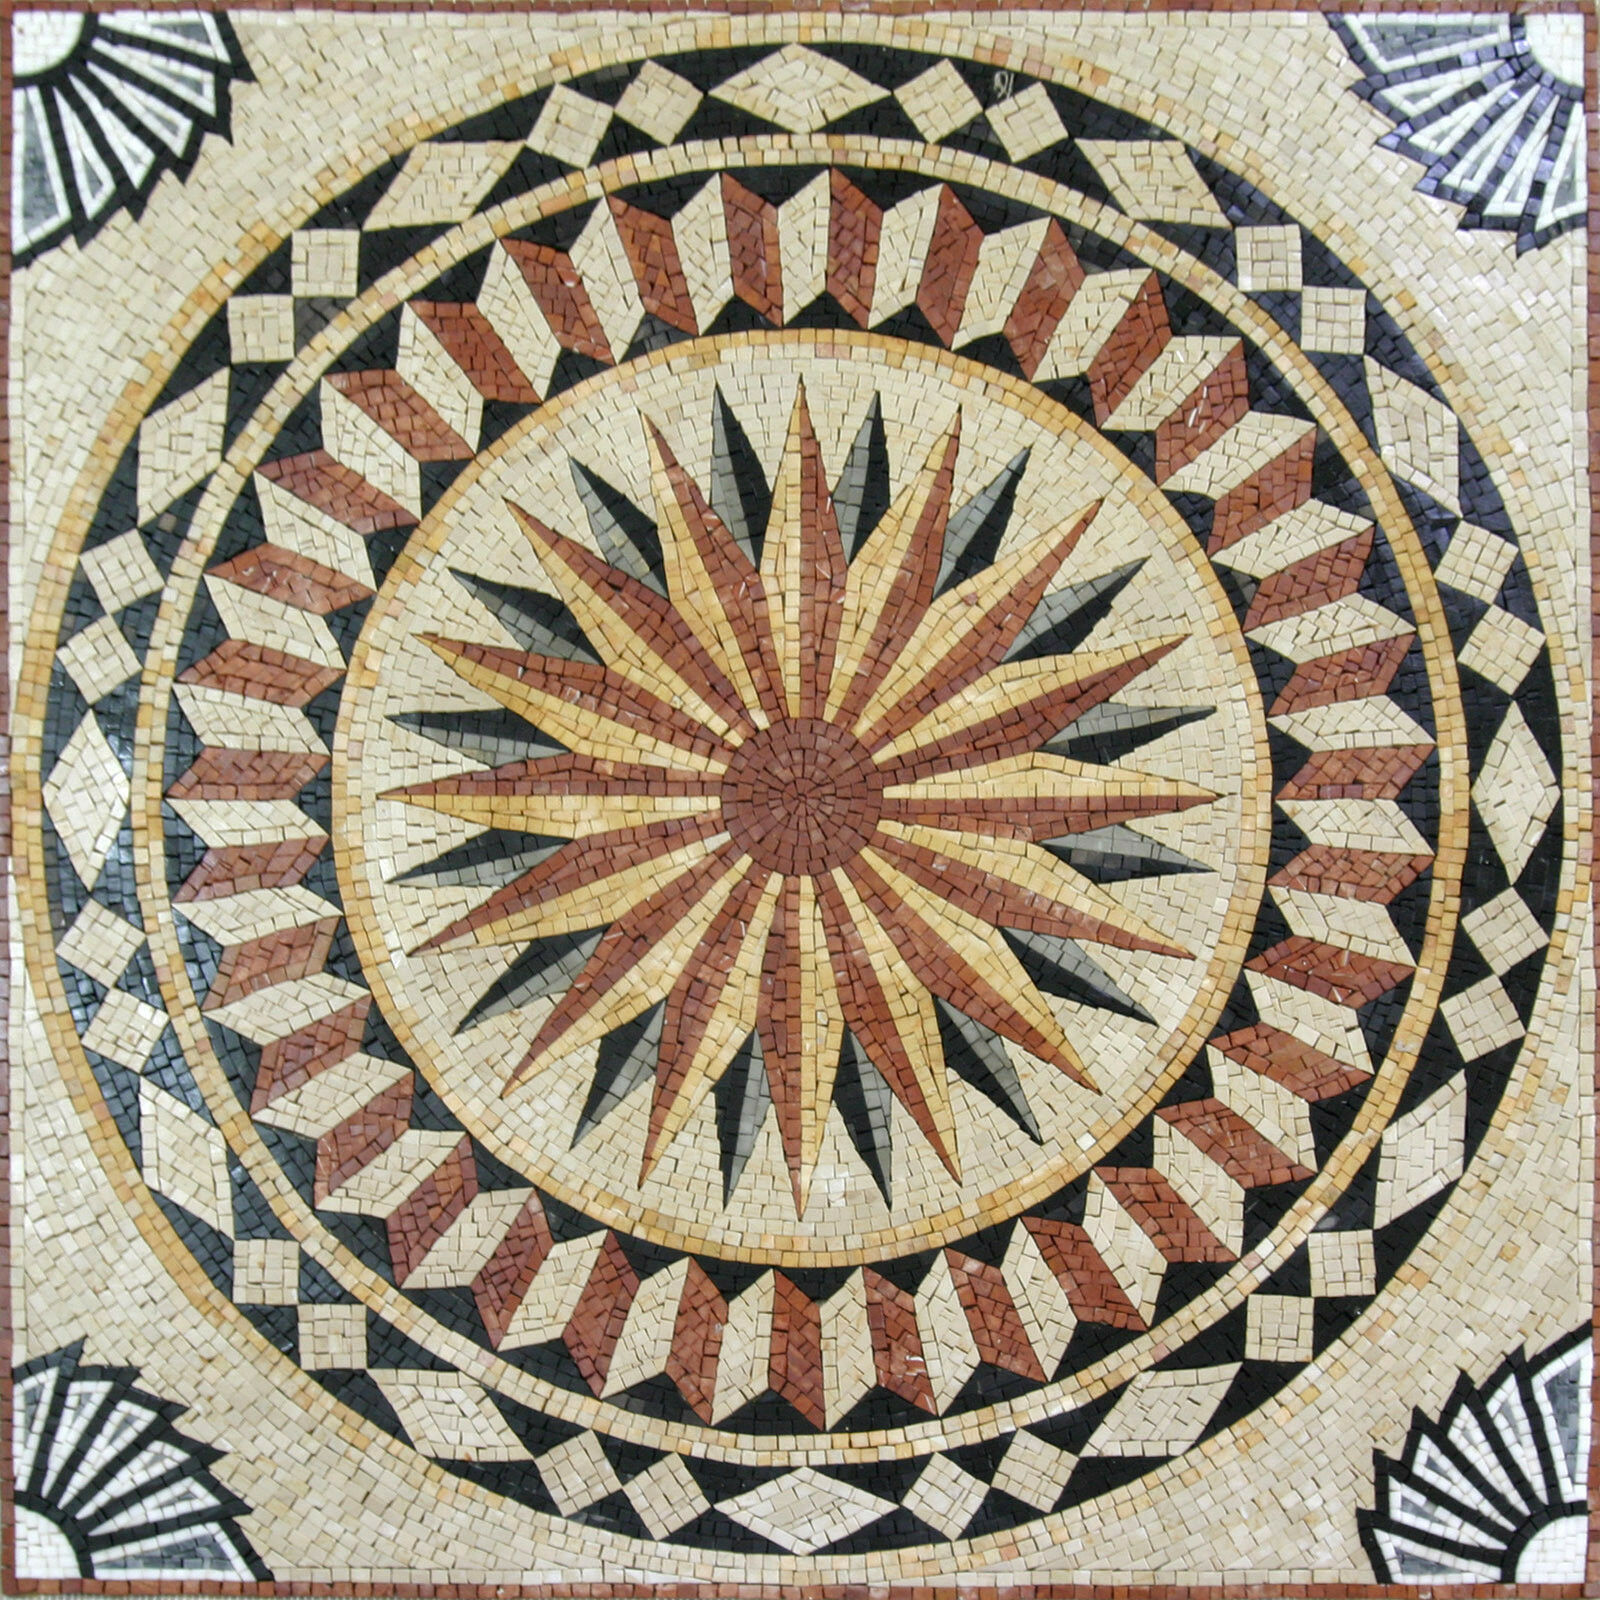 Modern Geometric Nautical Compass Motif Pool Home Marble Mosaic GEO1379